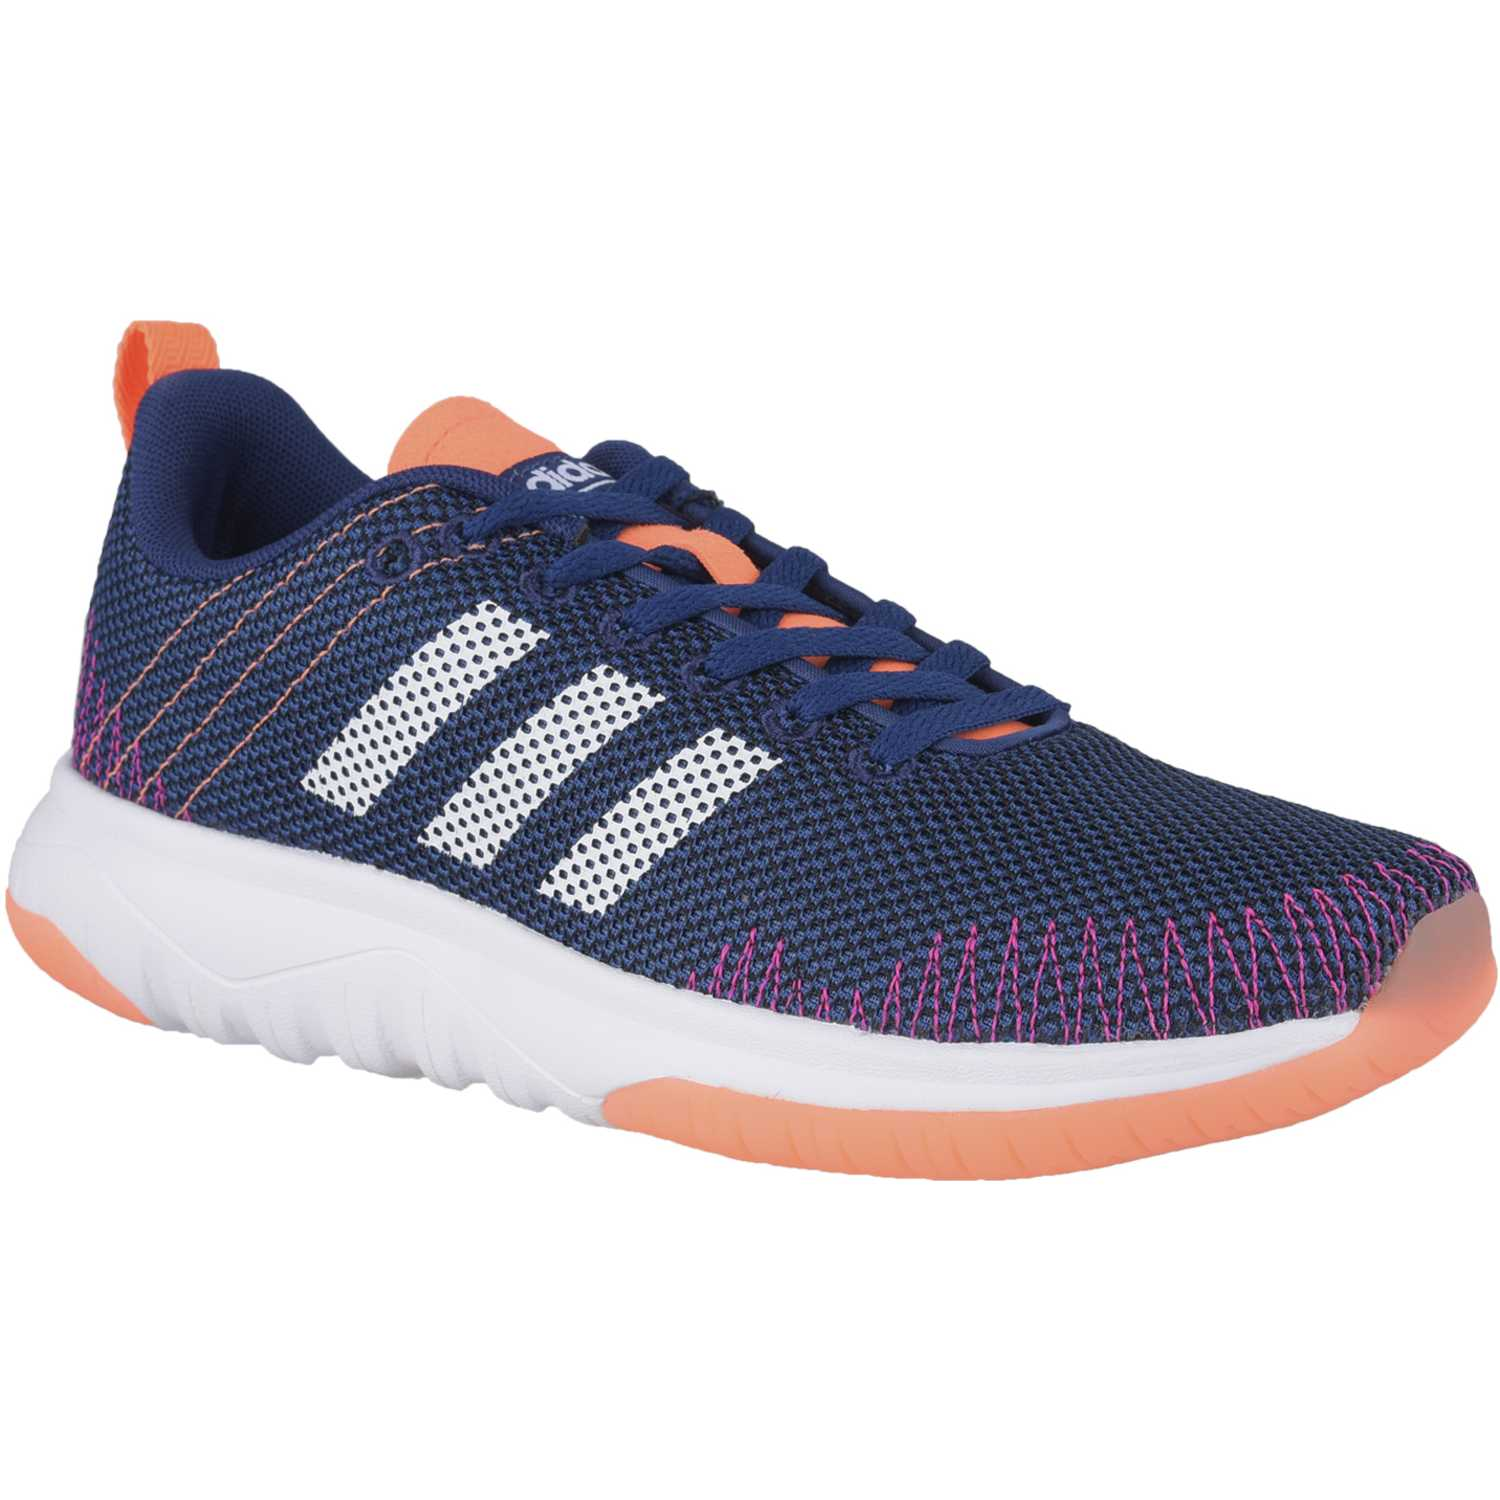 purchase adidas neo skate lilla orange aee7c 6f45d